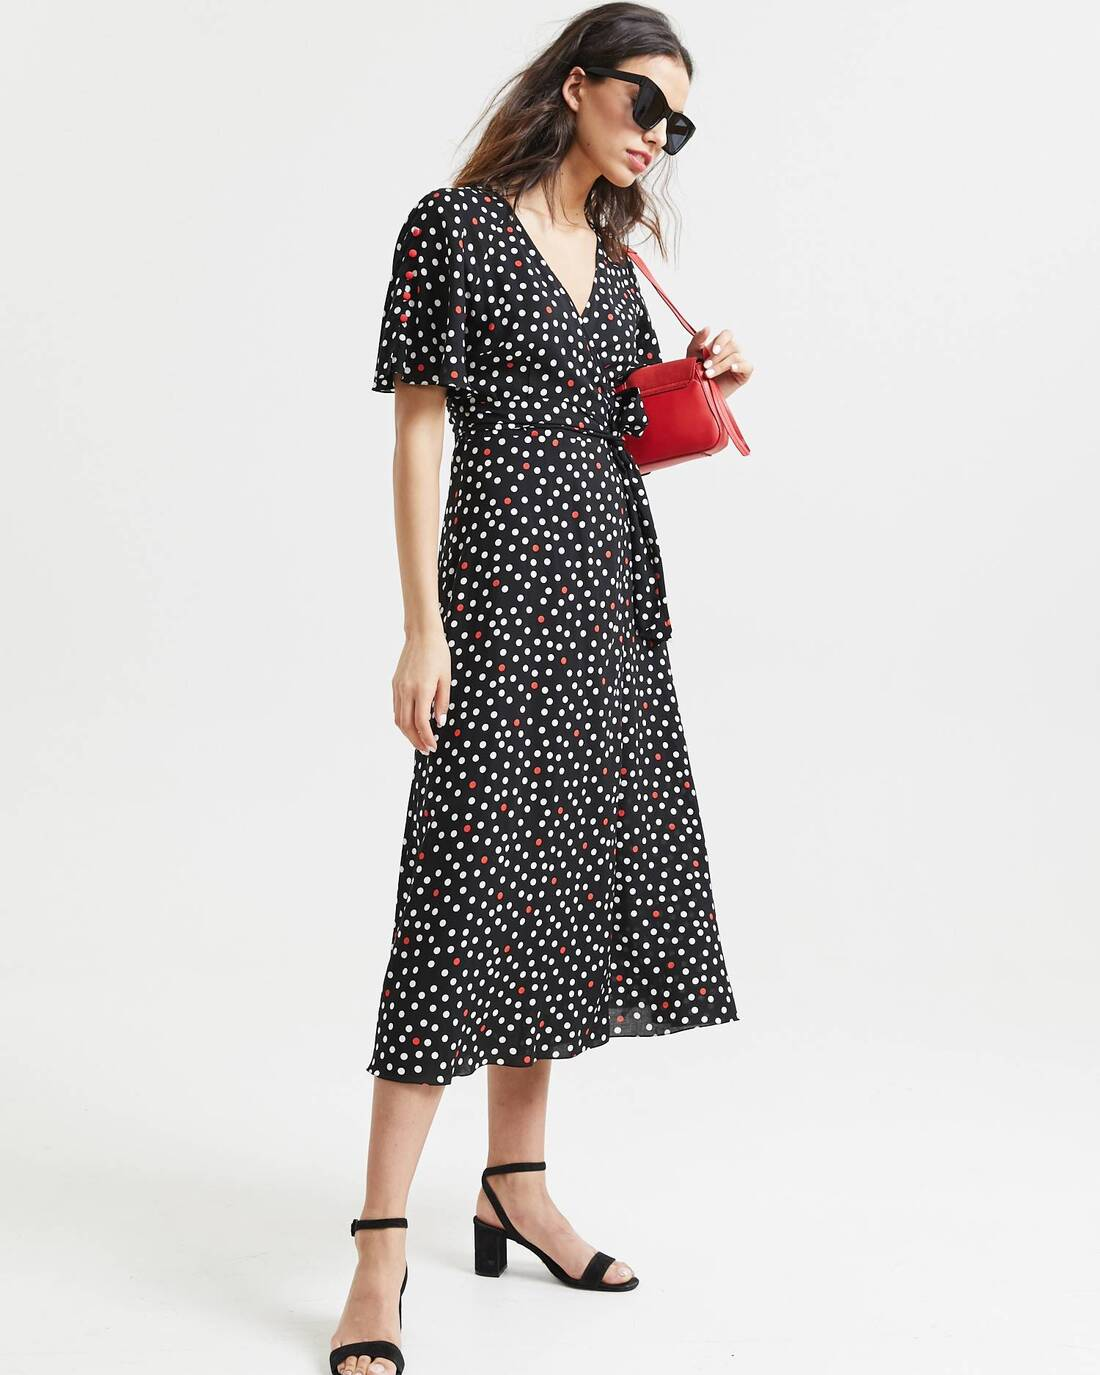 Printed midi dress with ruffles